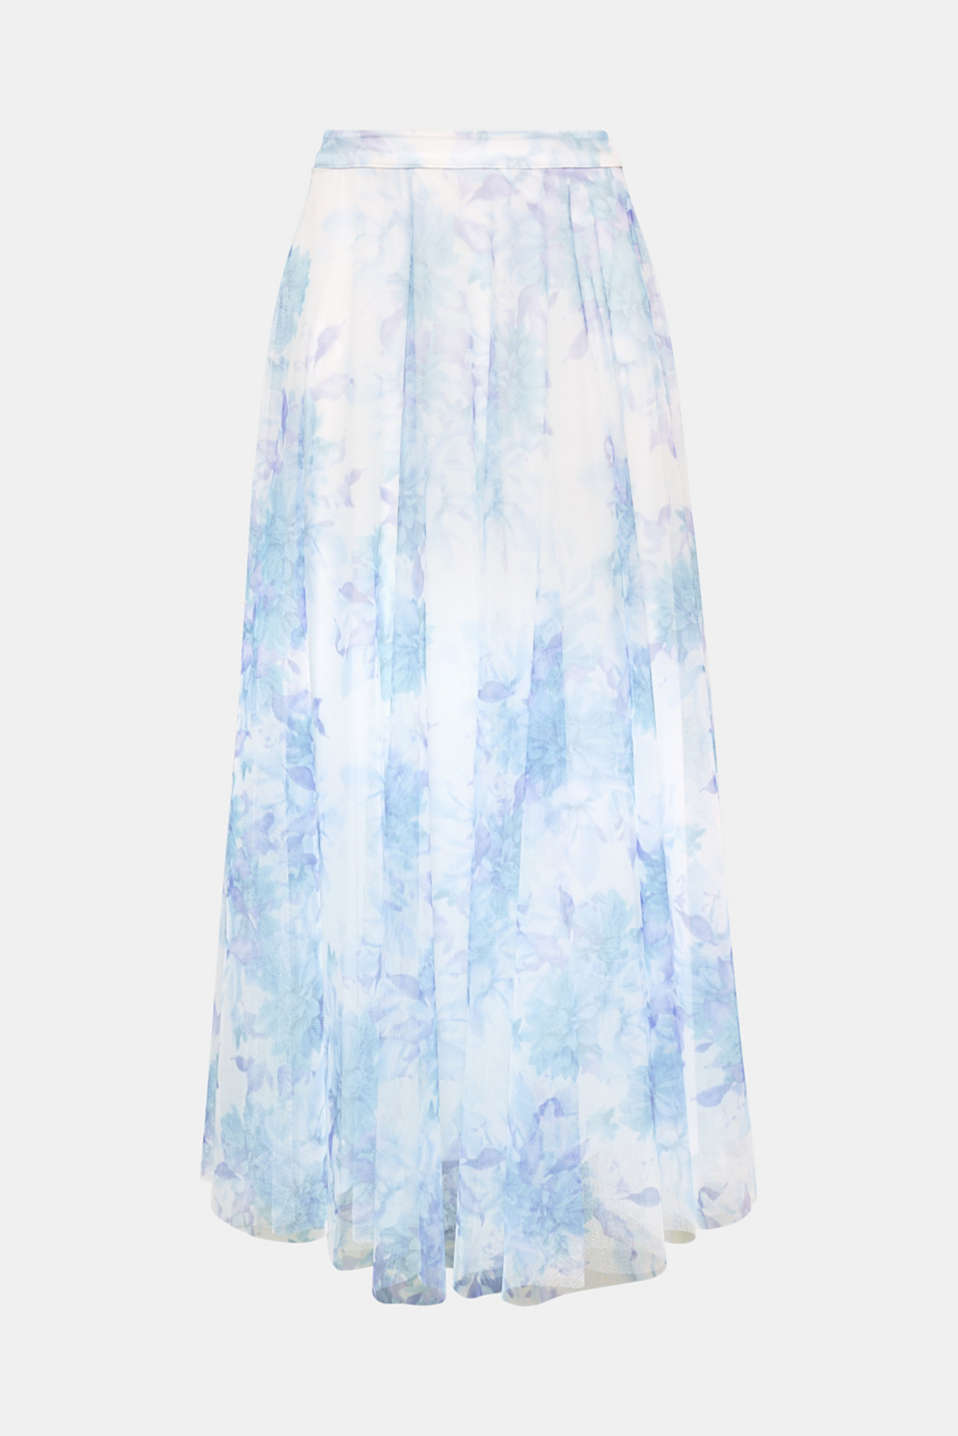 For your summery festive look: This maxi skirt gets an especially light and airy look from the fine tulle and delicate floral print!